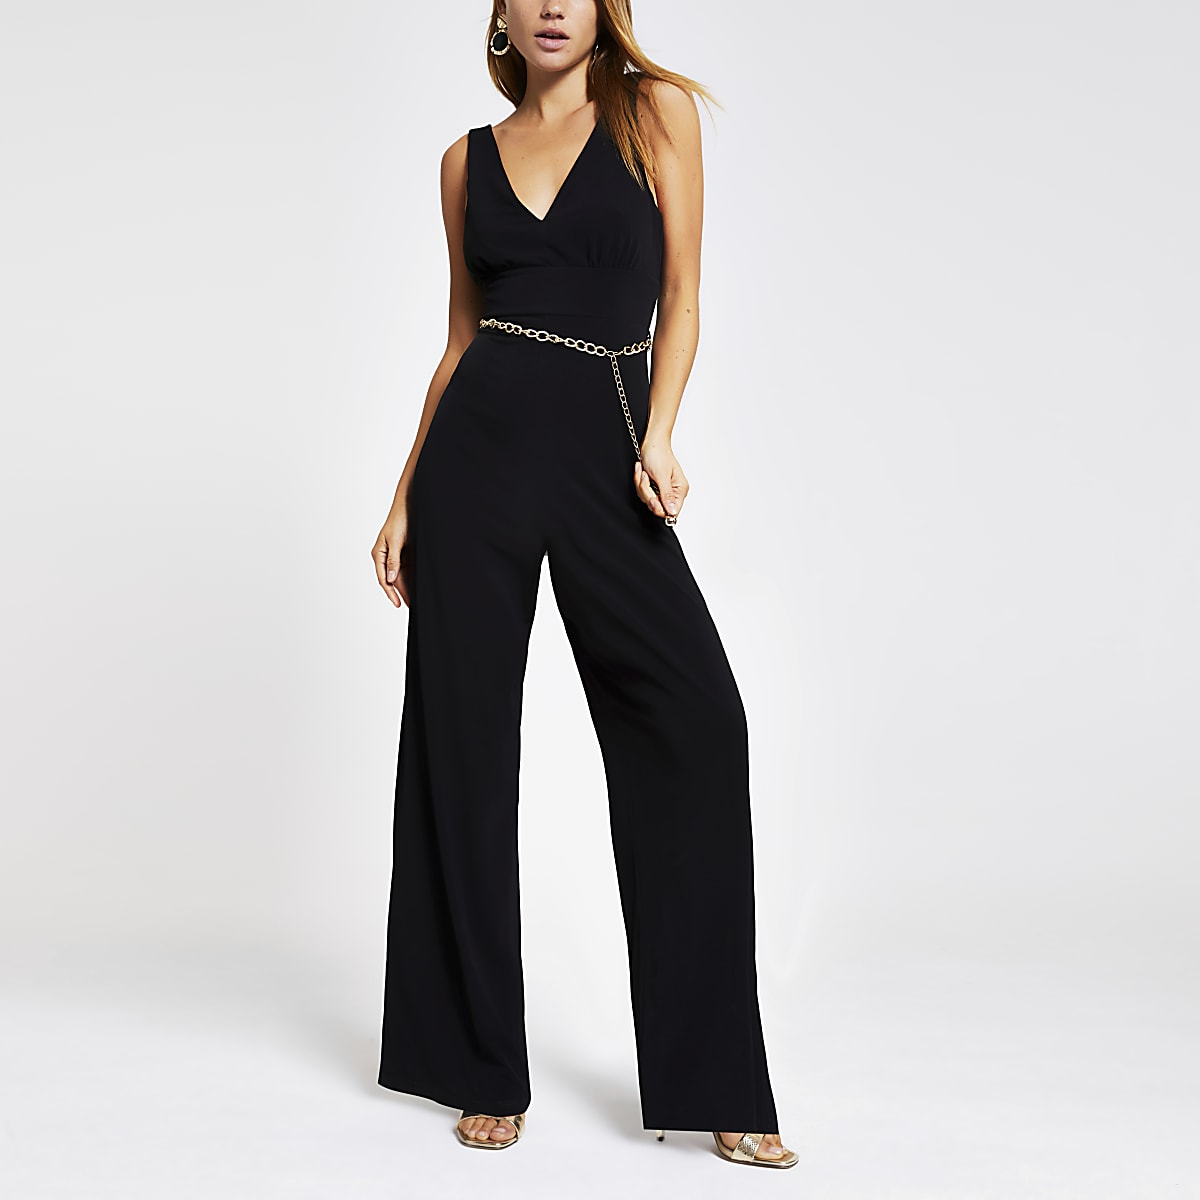 Black chain belted jumpsuit